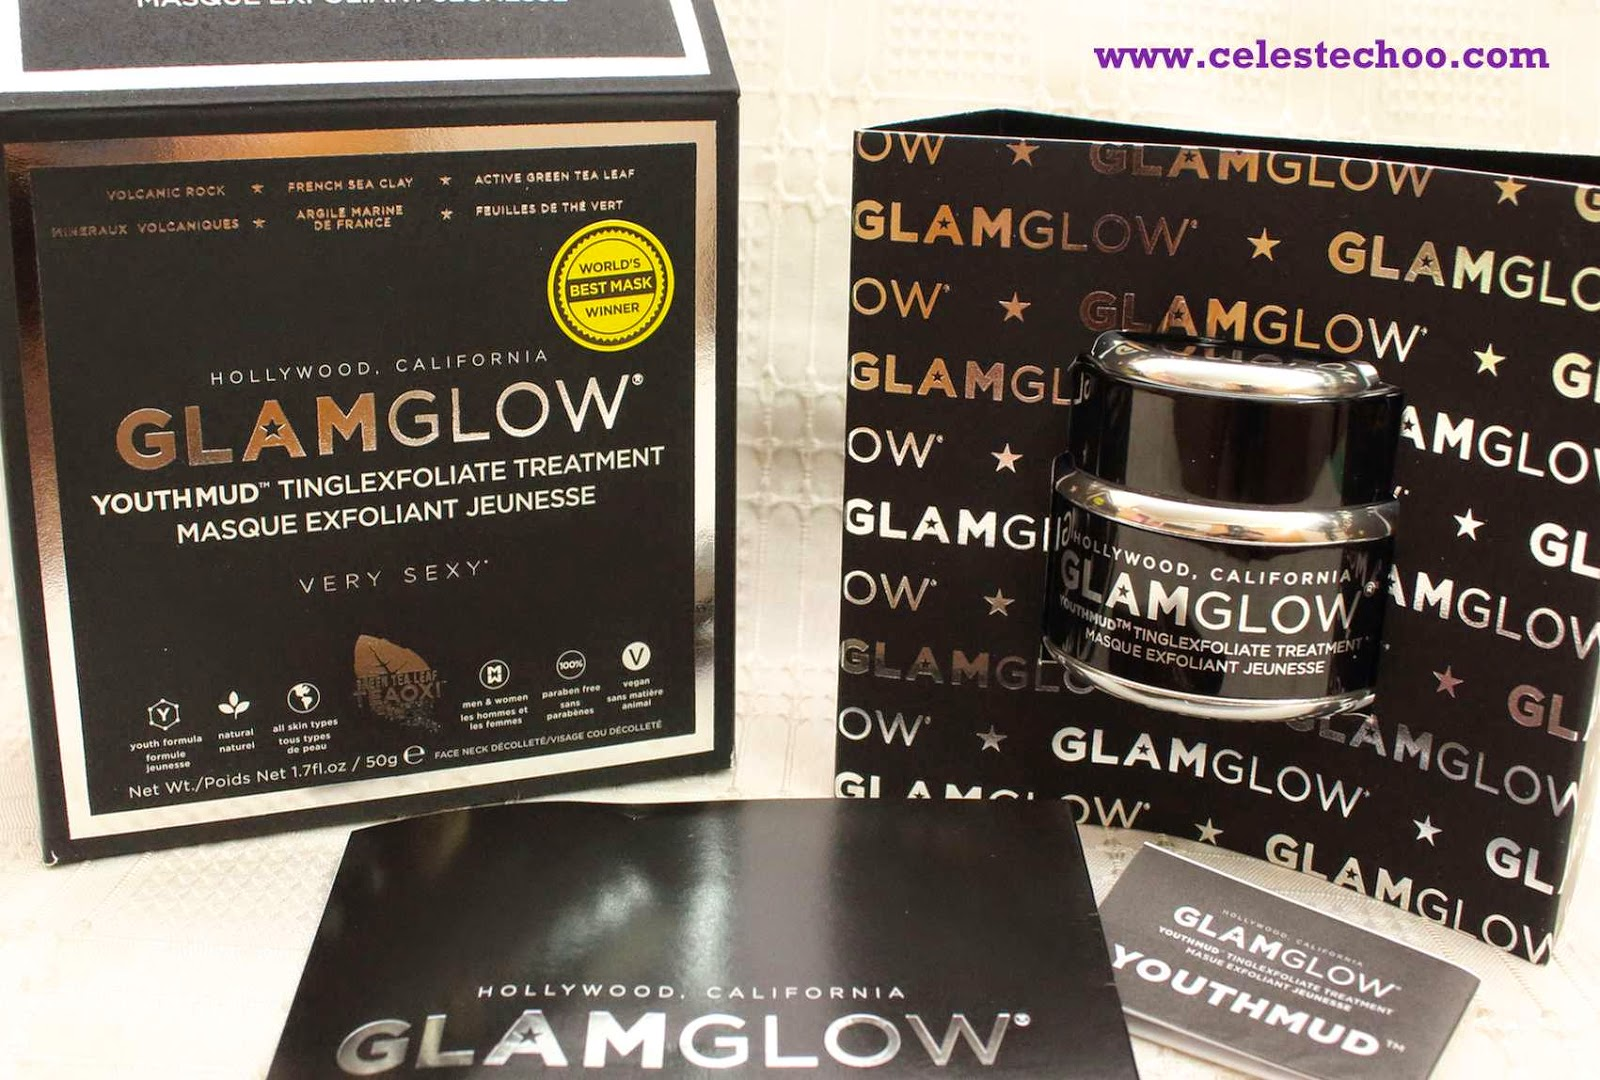 glamglow-mud-youthmud-tingle-exfoliate-treatment-product-review